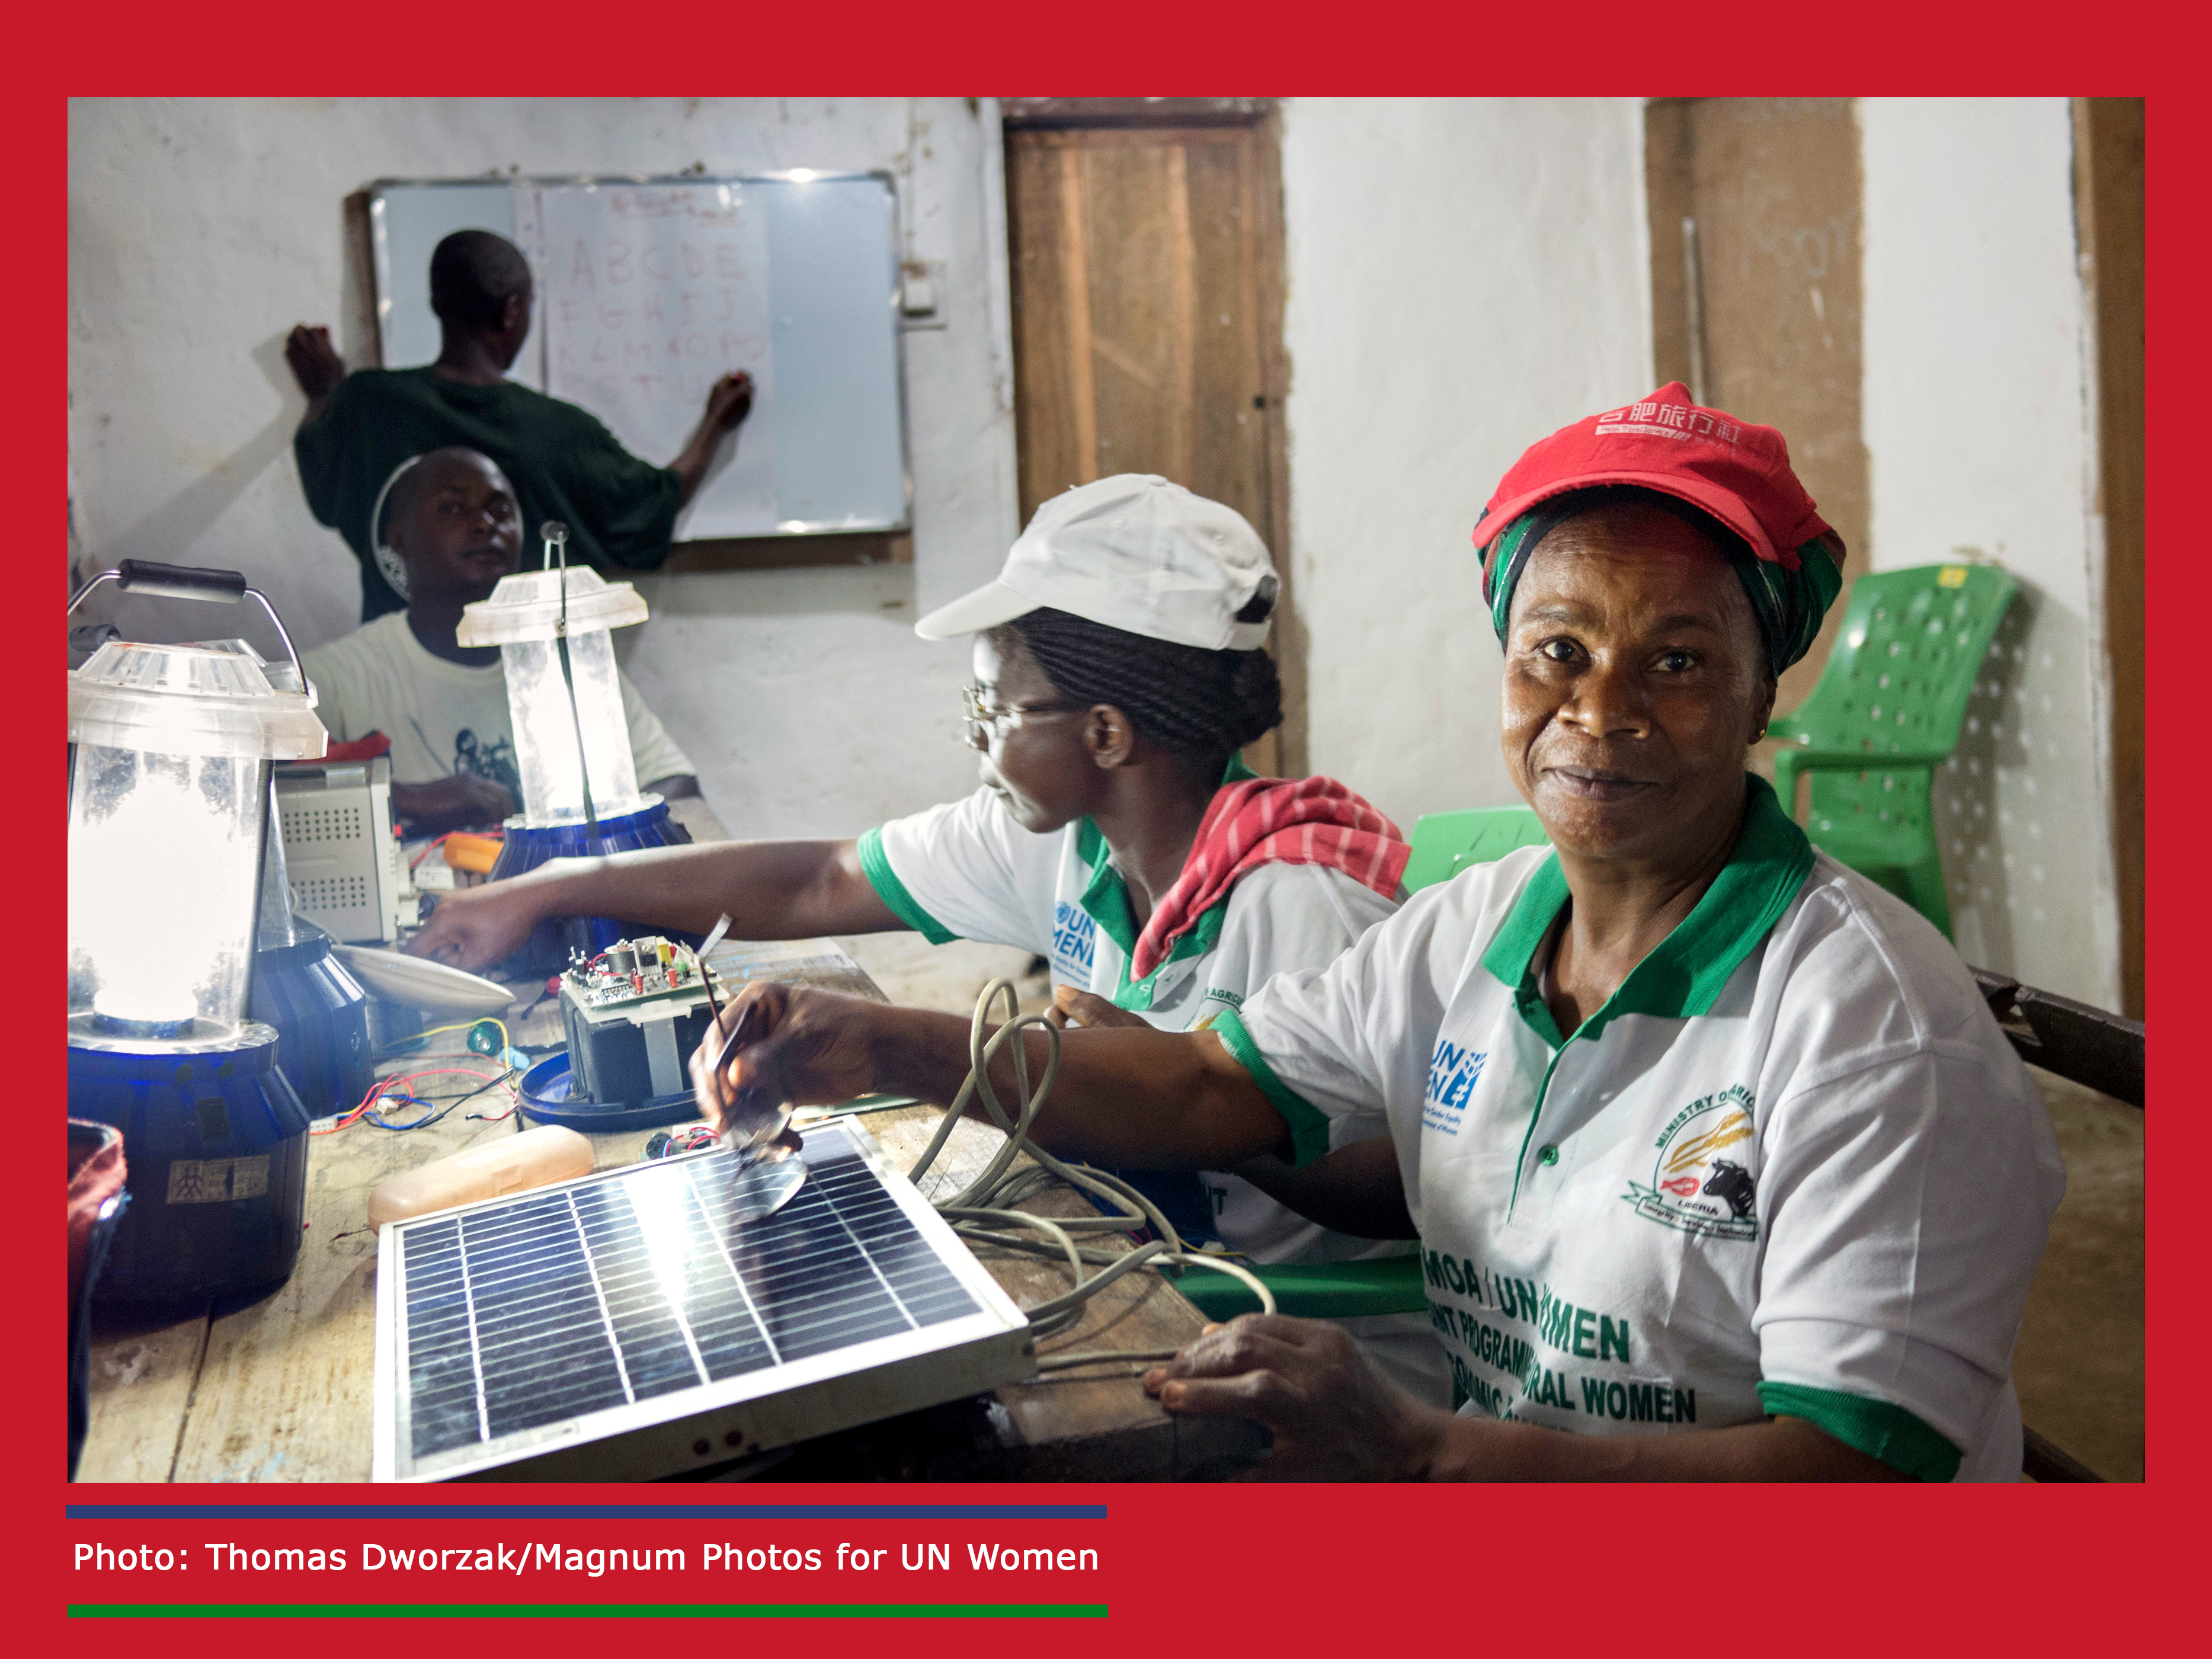 Musu Junius and Marie Weeks attended Barefoot College solar engineer training in India